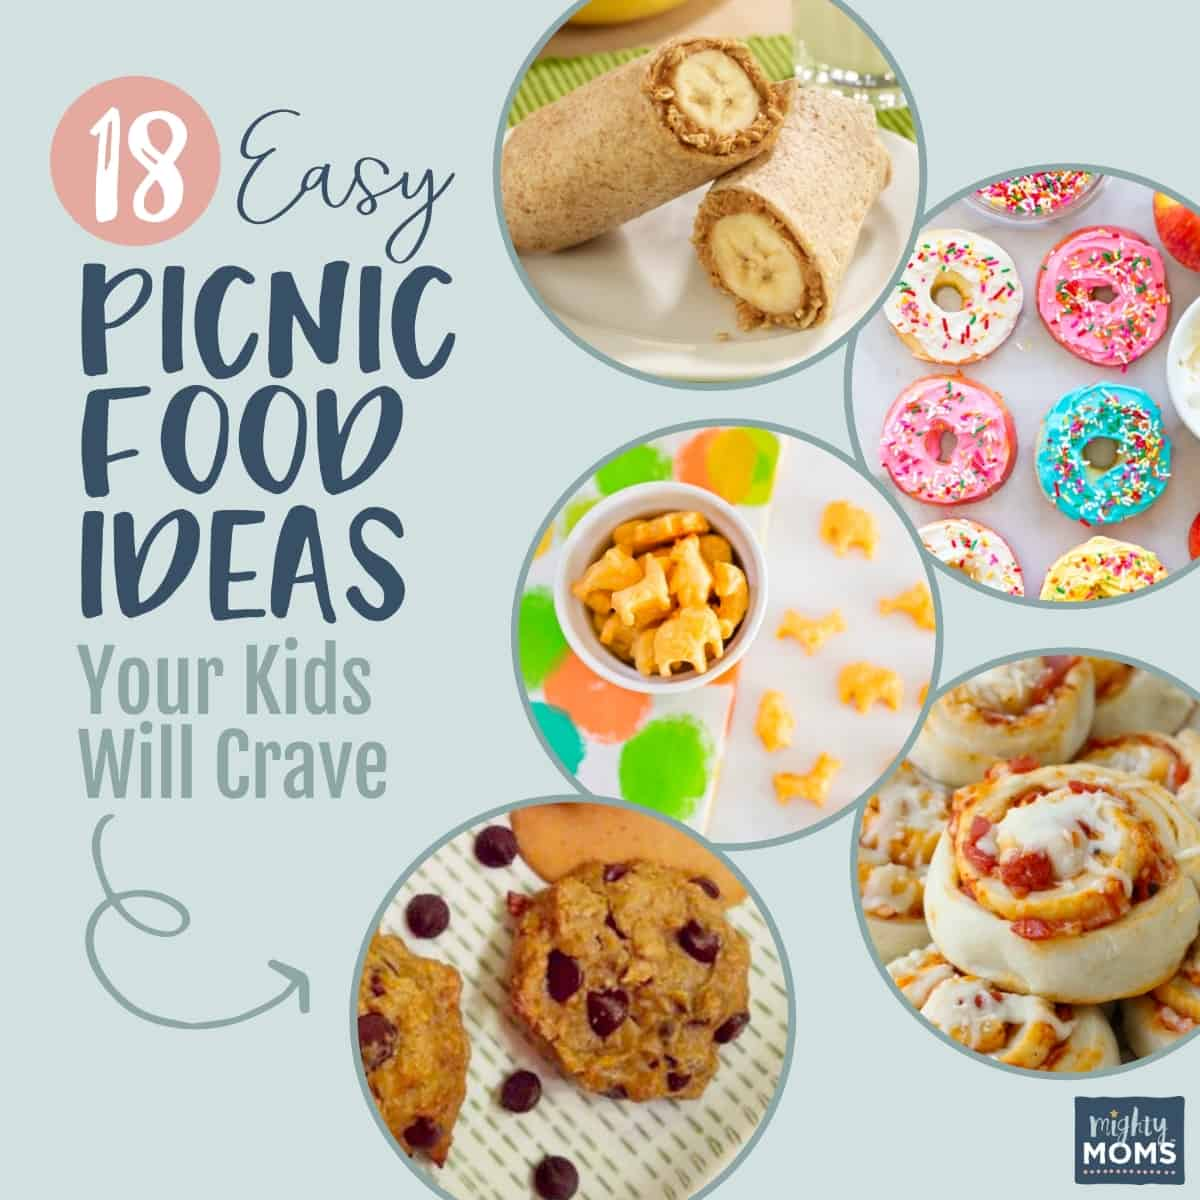 18 Easy Picnic Food Ideas Your Kids Will Crave Mightymoms Club